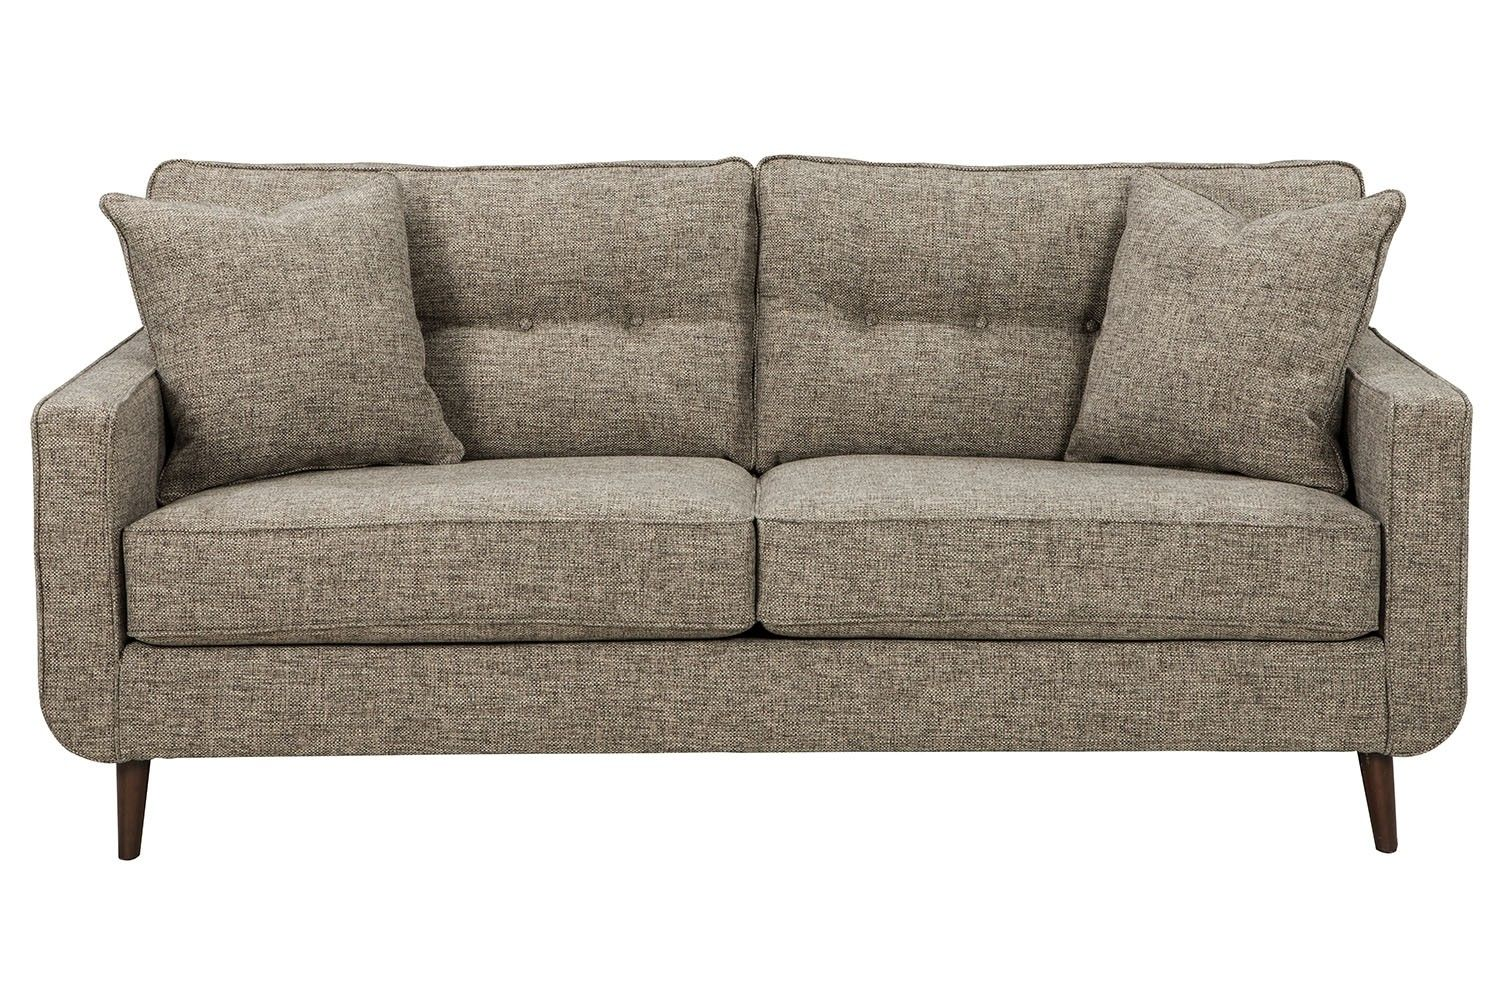 Shop for Chloe Sofa and other Living